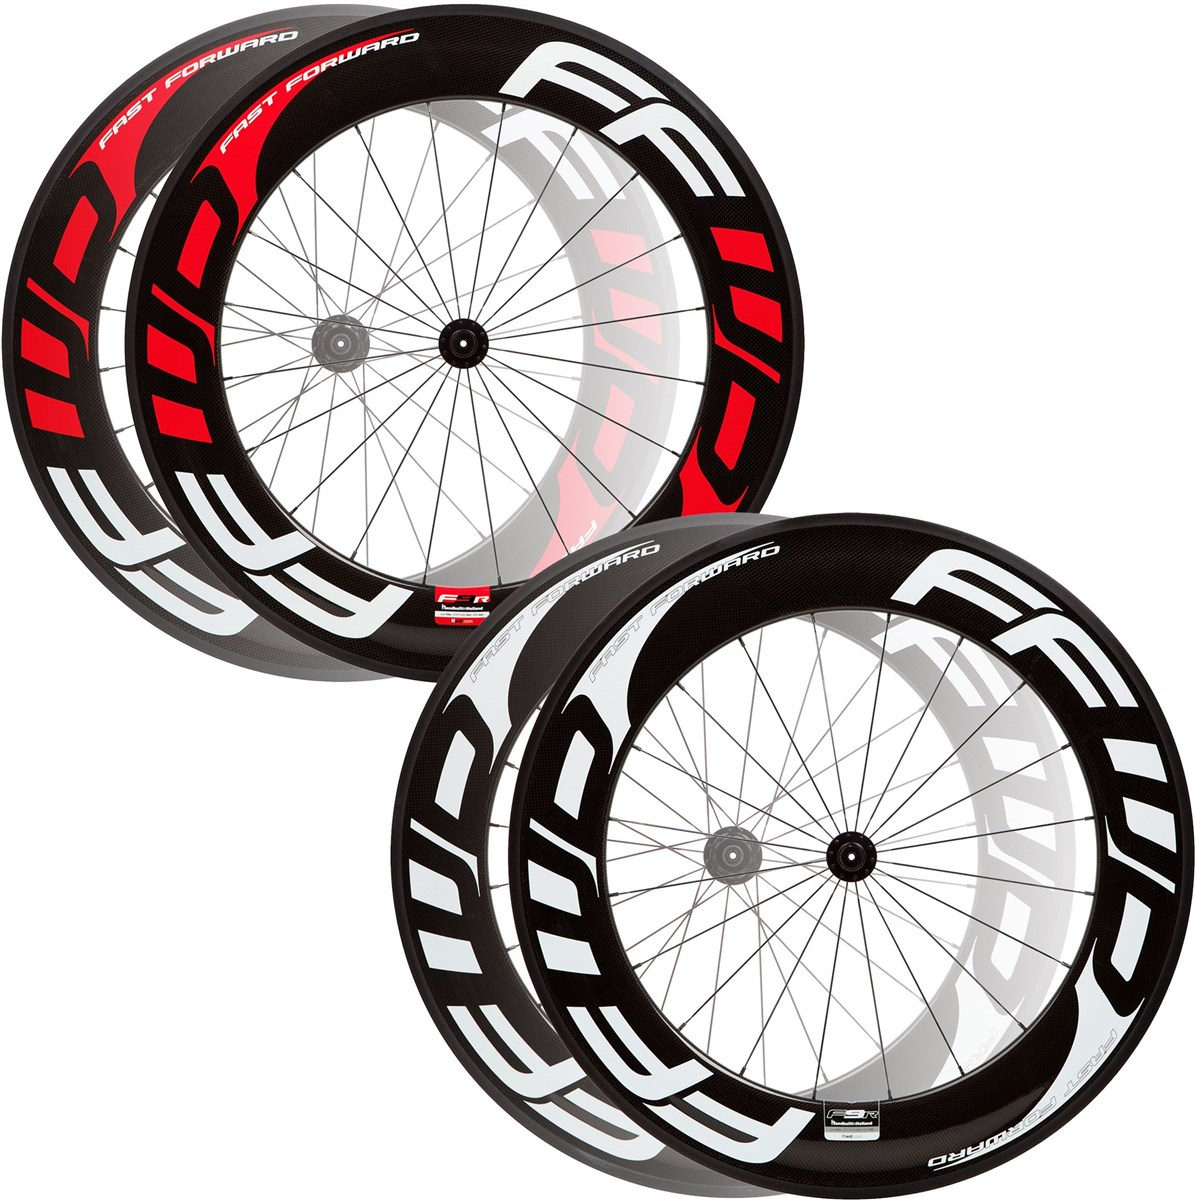 Fast Forward F9R Full Carbon Clincher Road Wheelset